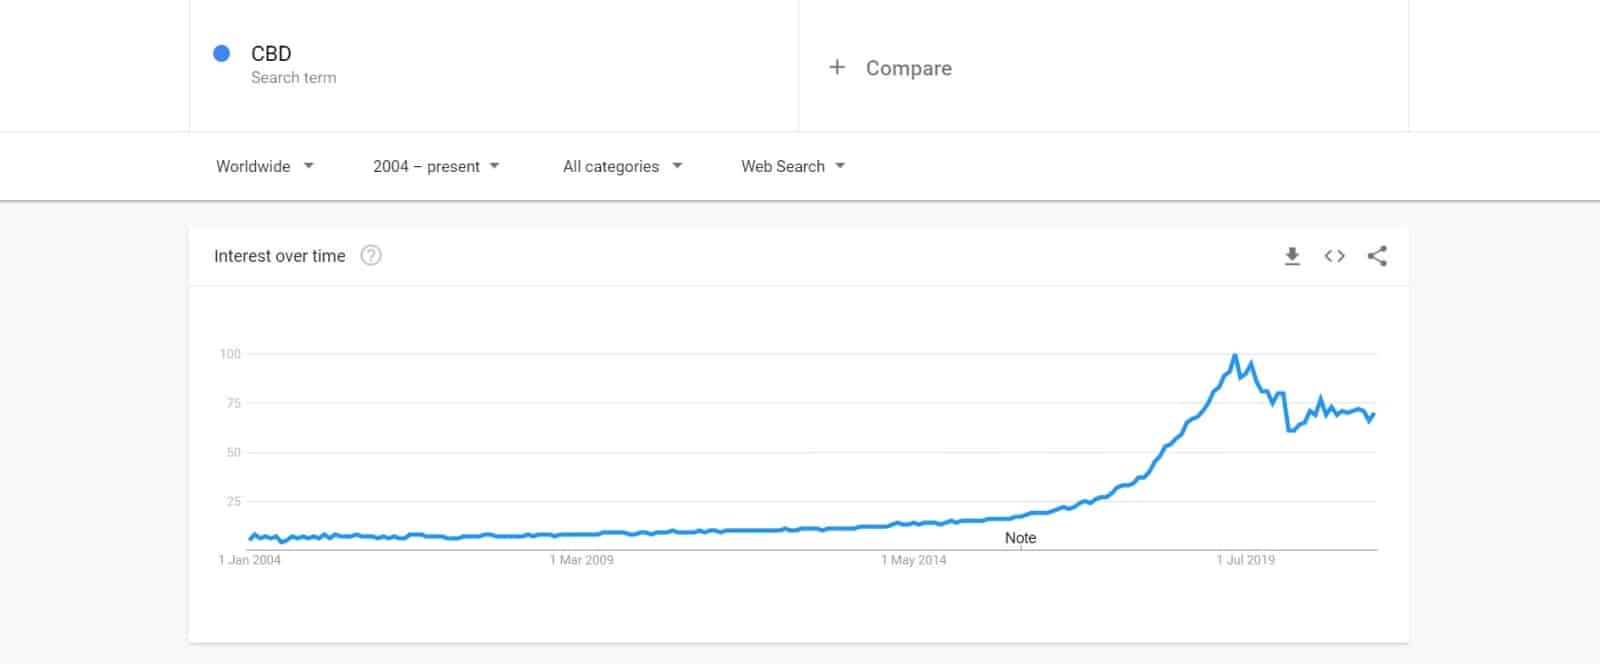 """Interest in the keyword """"CBD"""" peaked in 2019, then declined and stabilized."""